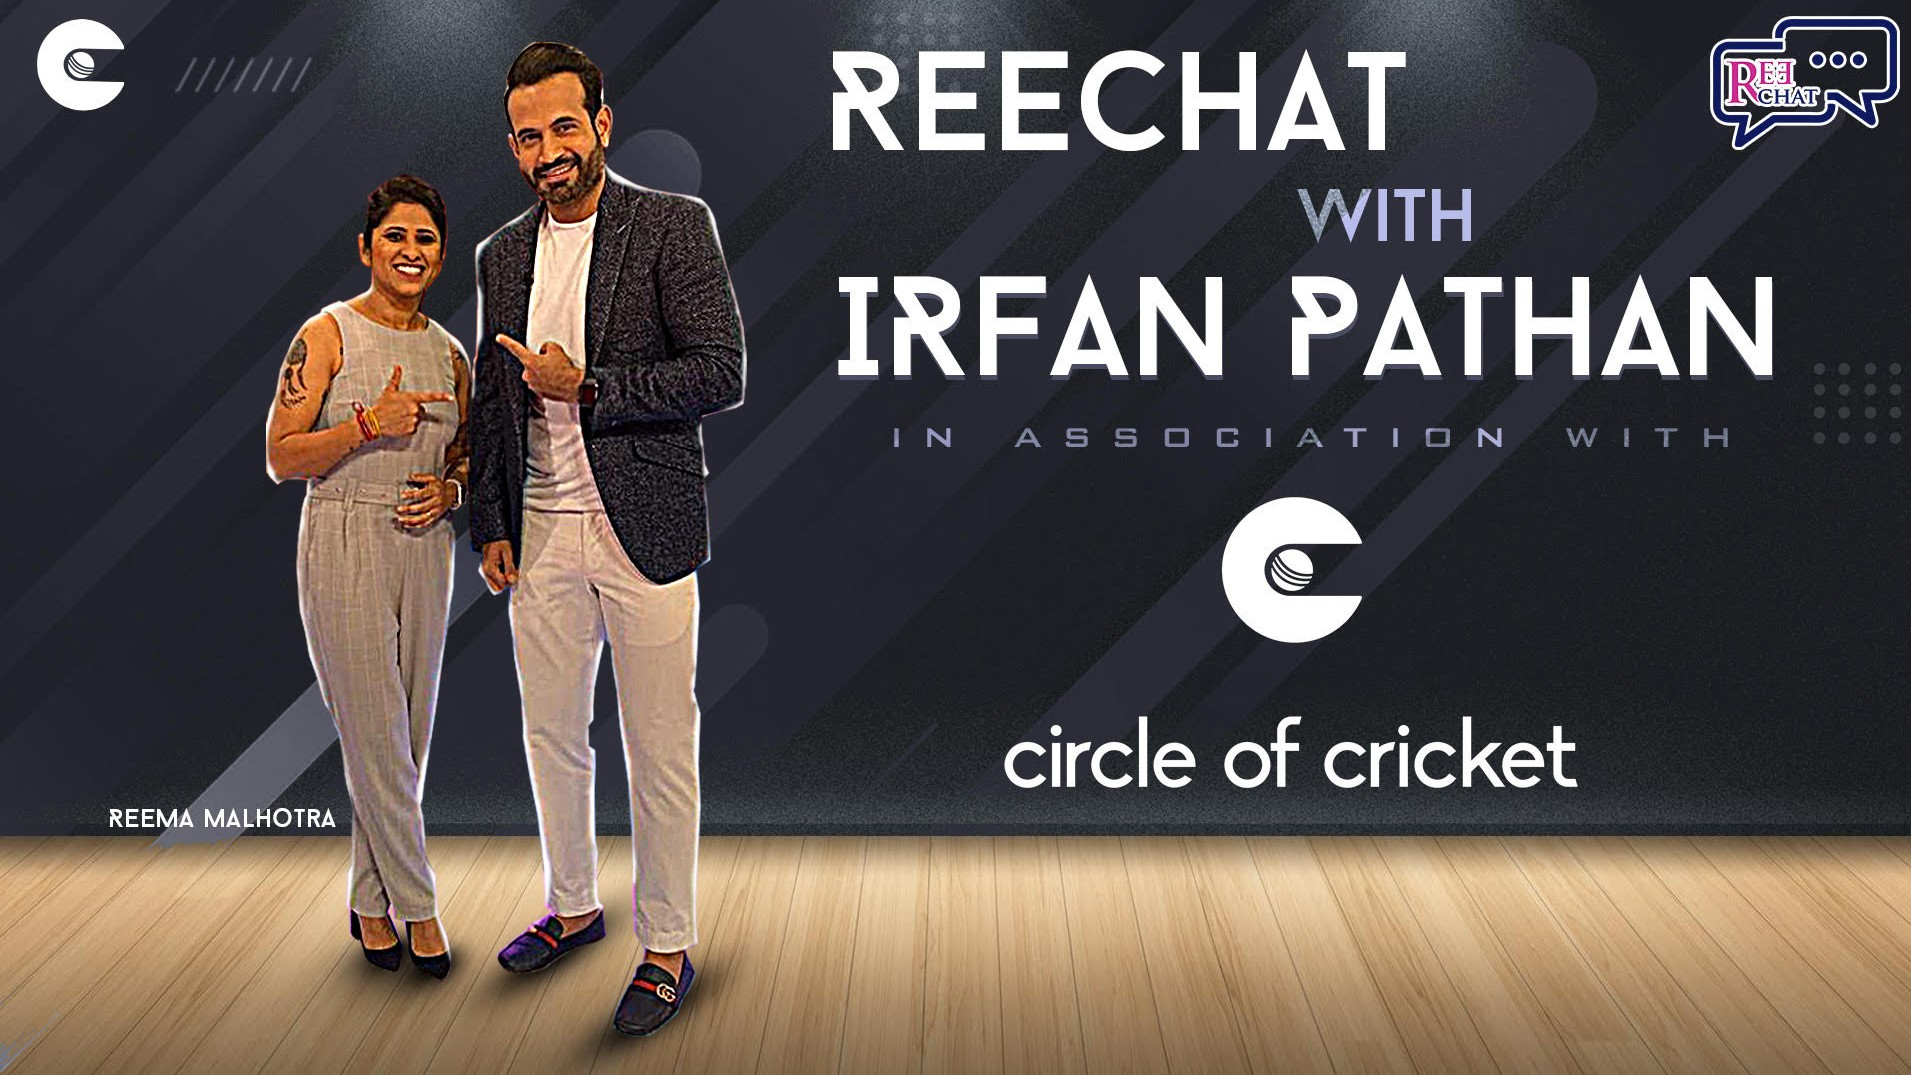 Exclusive: Circle of Cricket presents REECHAT hosted by Reema Malhotra; Episode.1 feat. Irfan Pathan